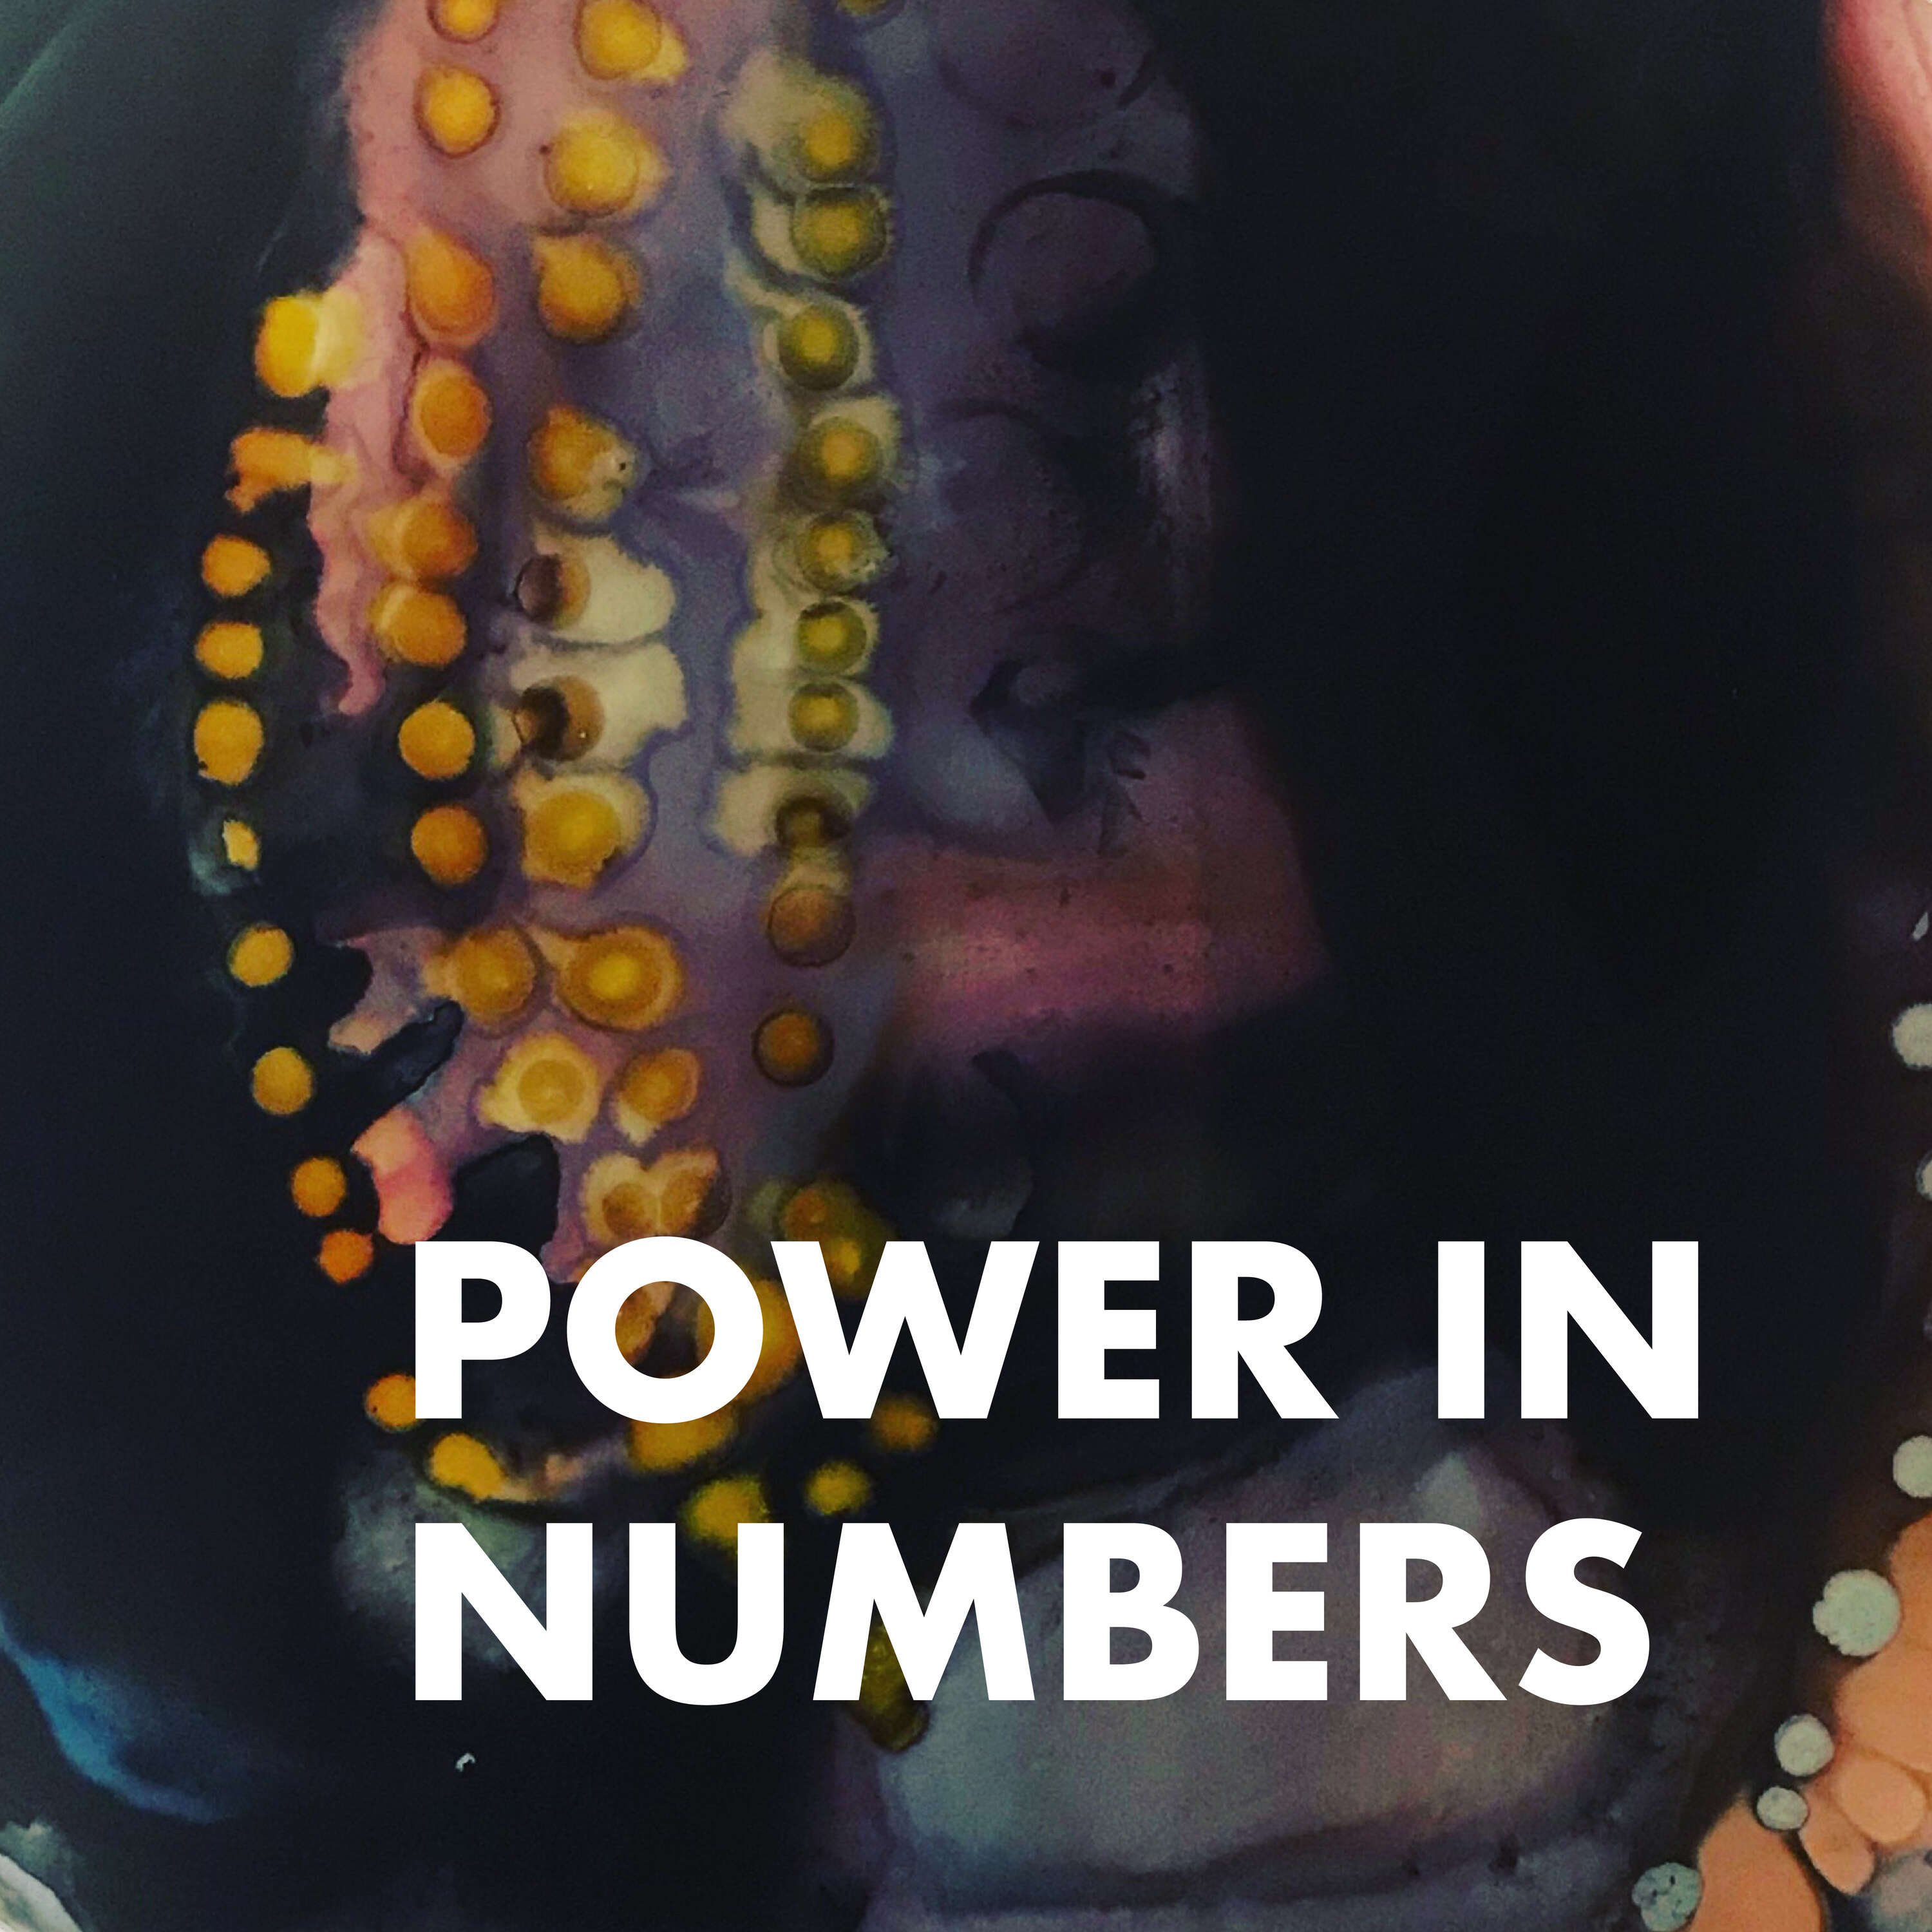 8: Power in Numbers